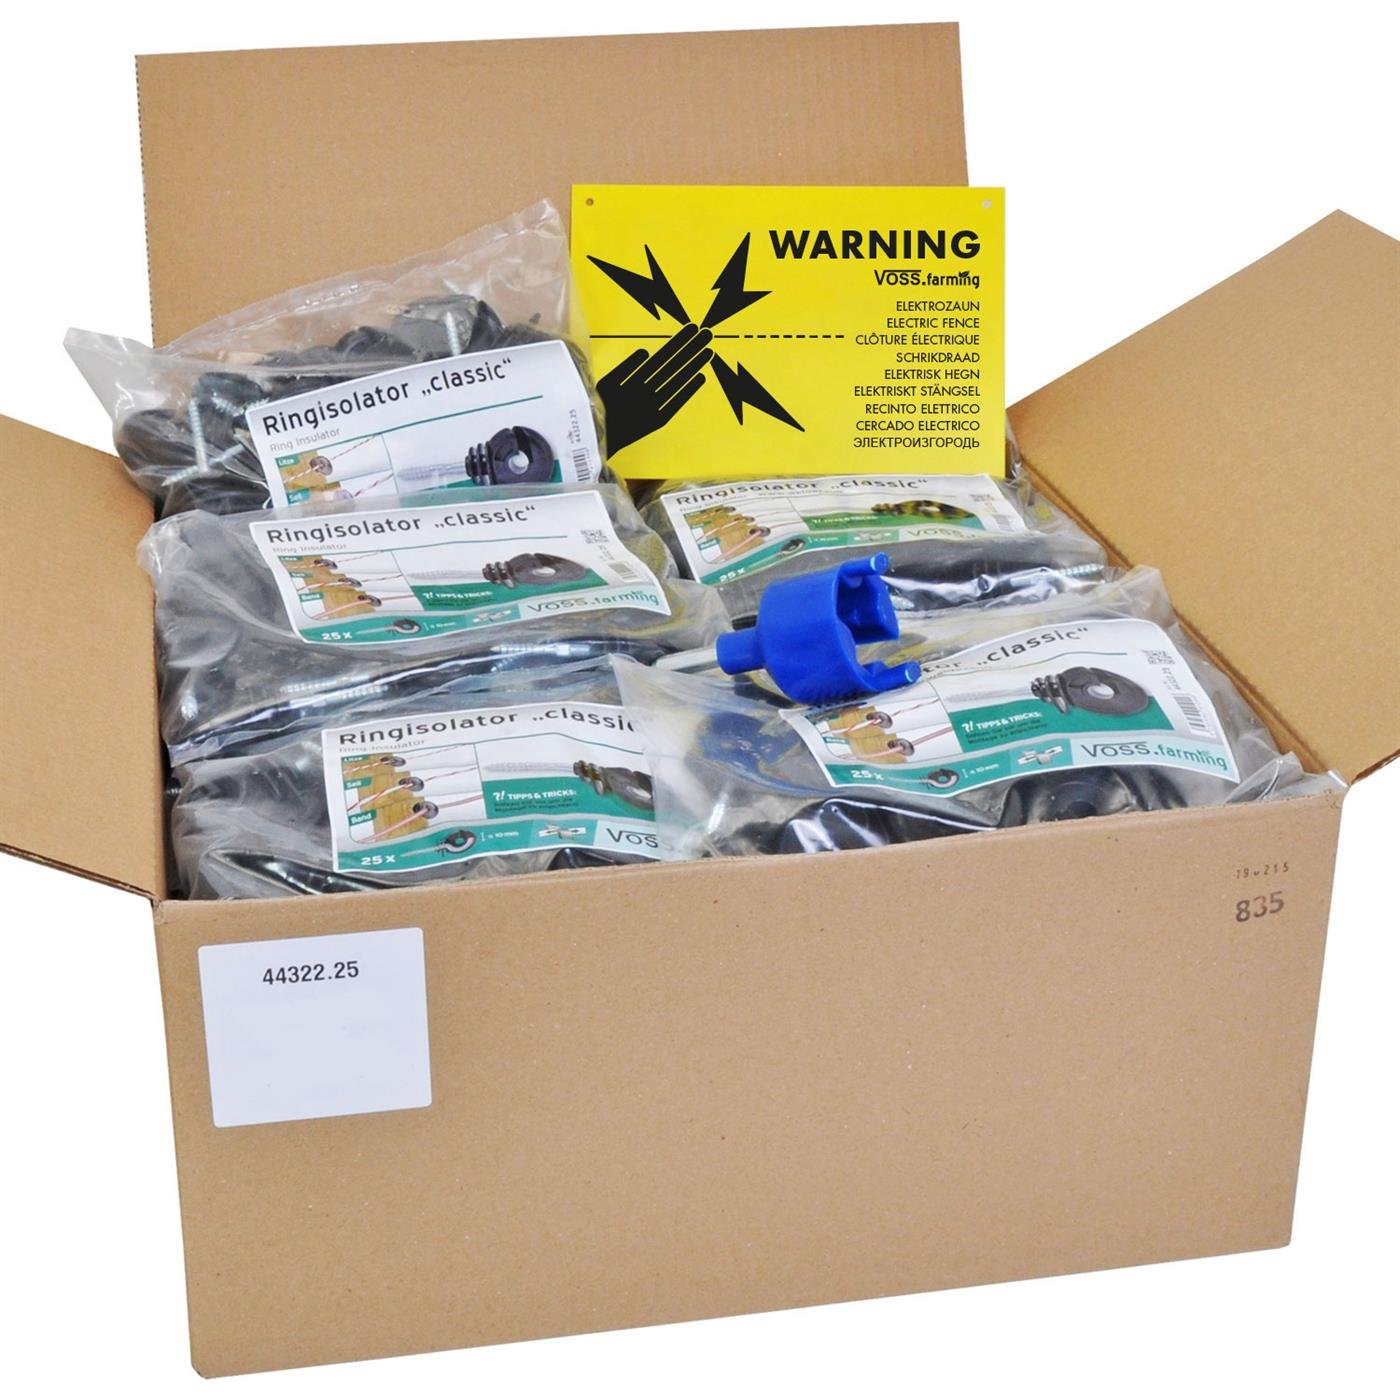 VOSS.farming Electric Fence Mega Pack - Set Includes 500x Classic Ring Insulators, Drill Bit Fixing Tool and Warning Sign